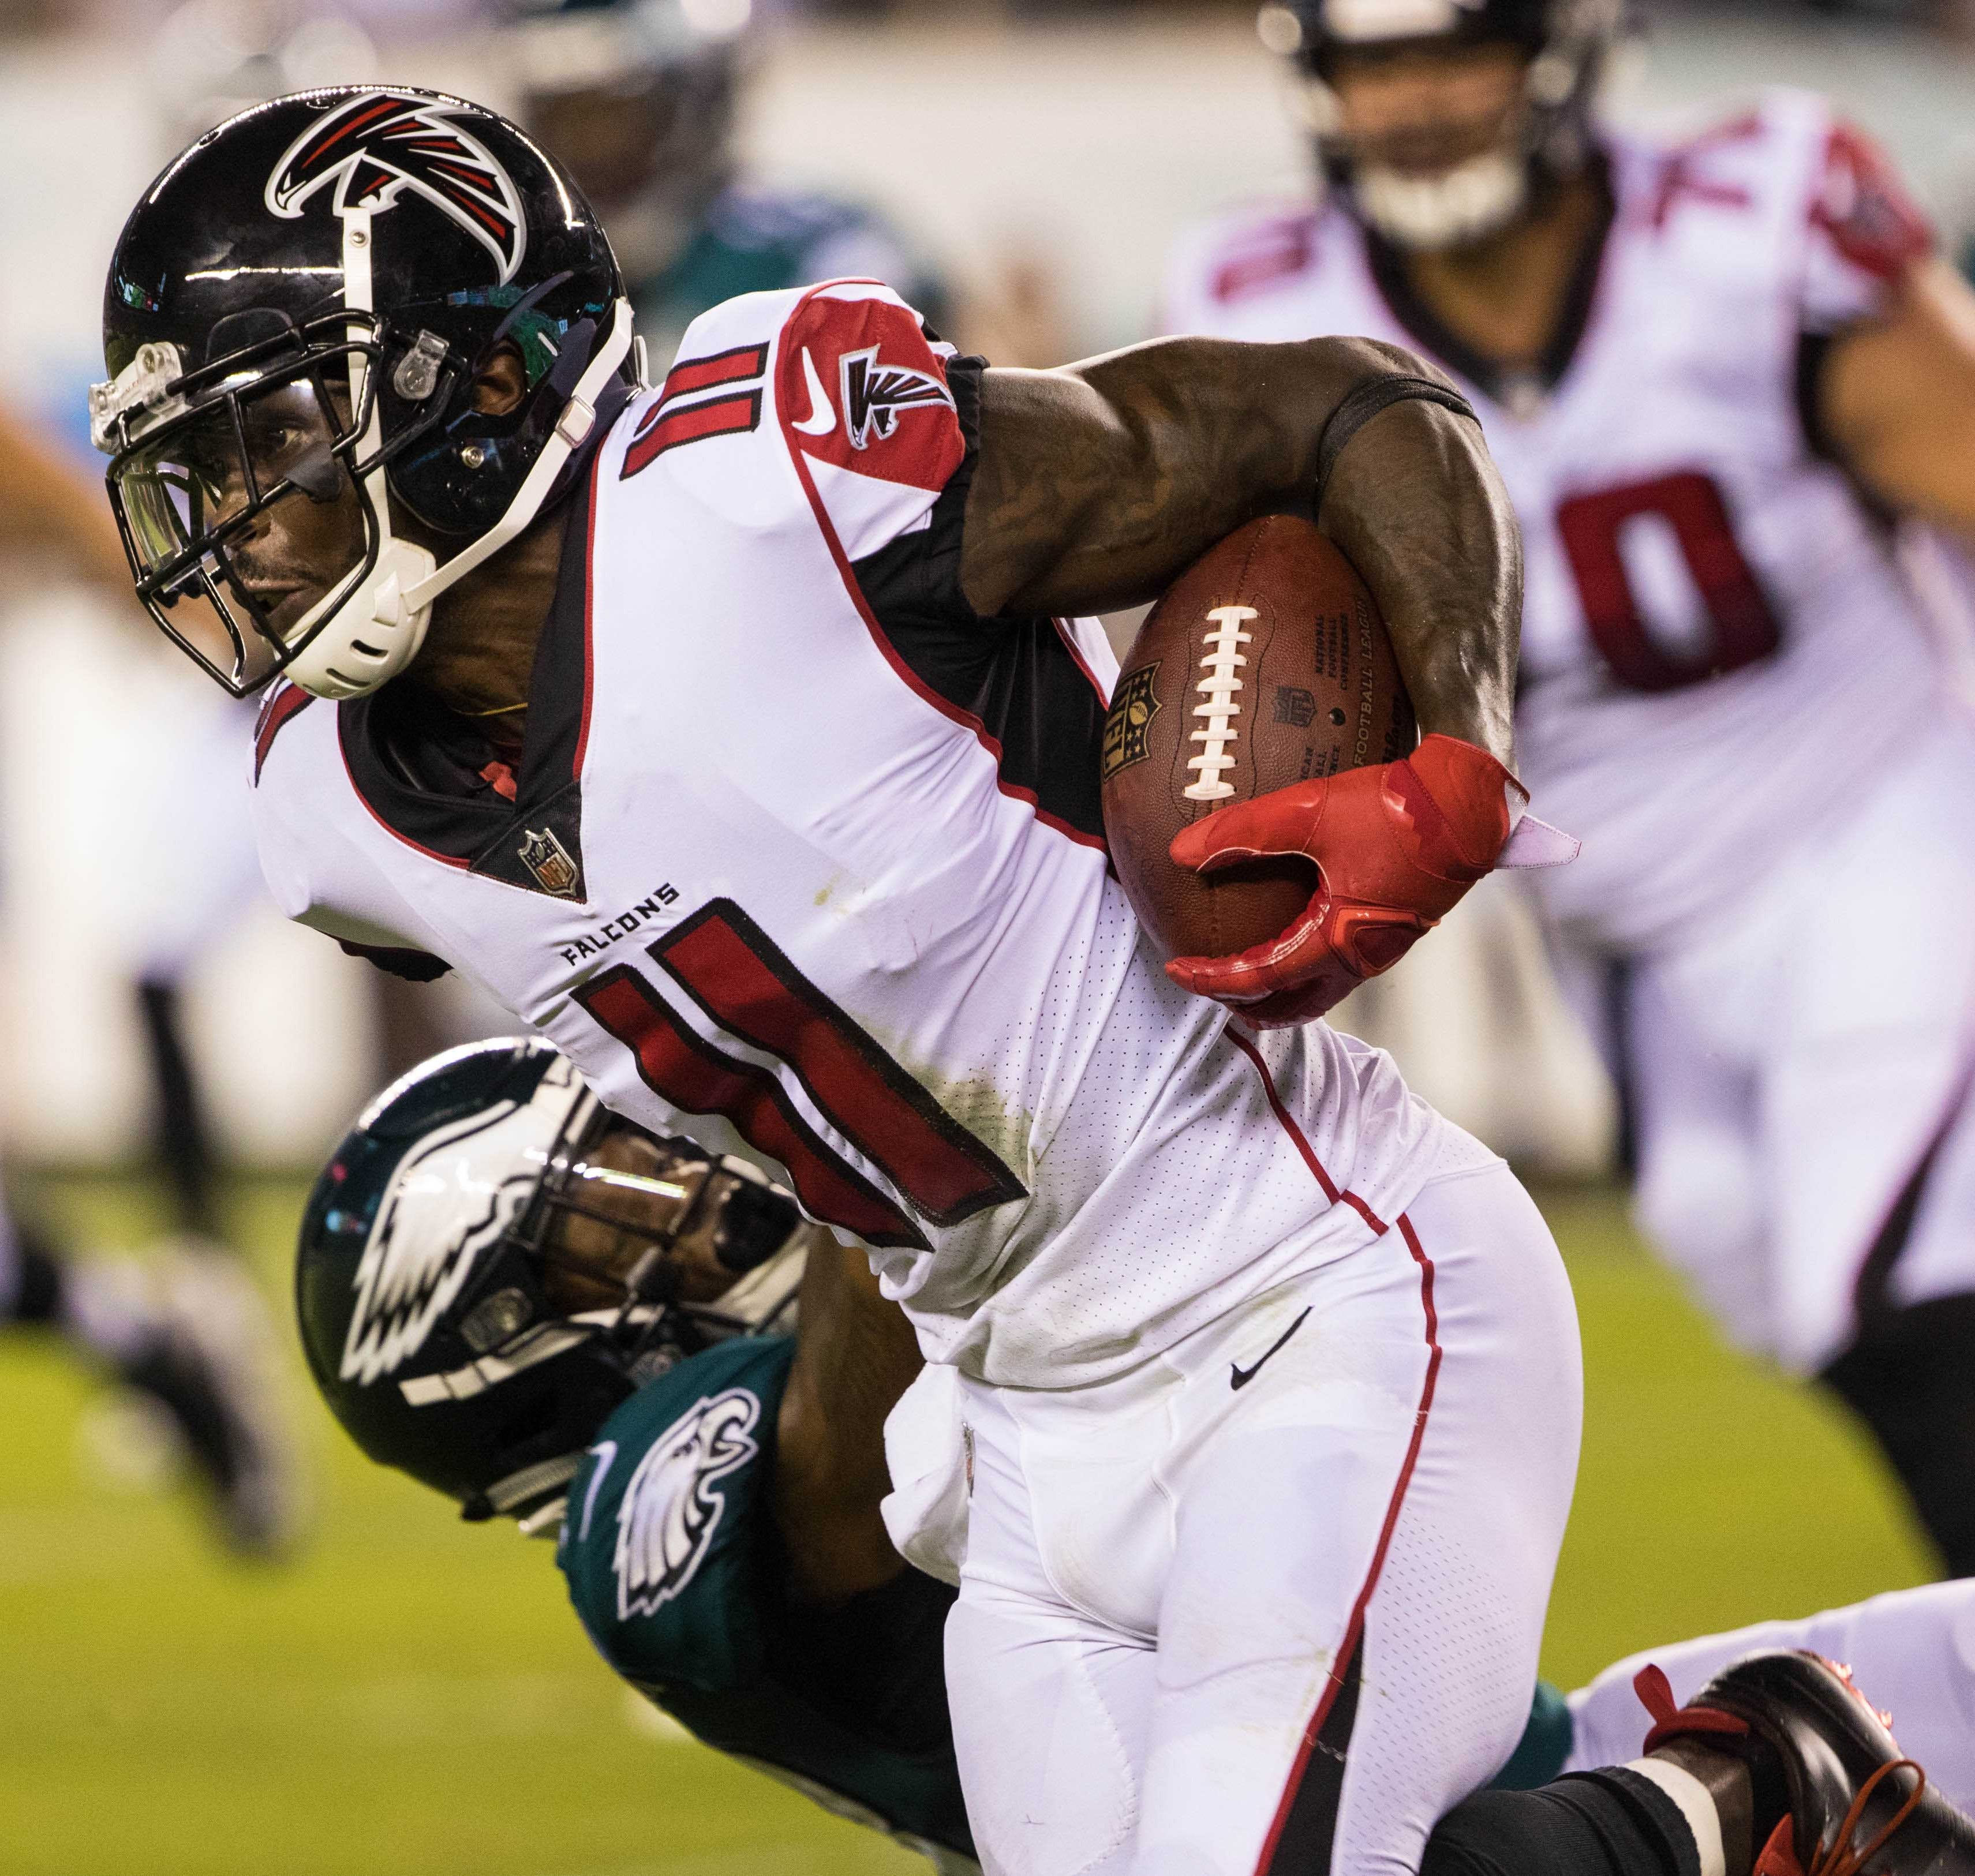 Atlanta Falcons wide receiver Julio Jones breaks the tackle attempt of Philadelphia Eagles defensive back Rodney McLeod during the first quarter at Lincoln Financial Field. - Packers QB Carted Off In Clash With Bears